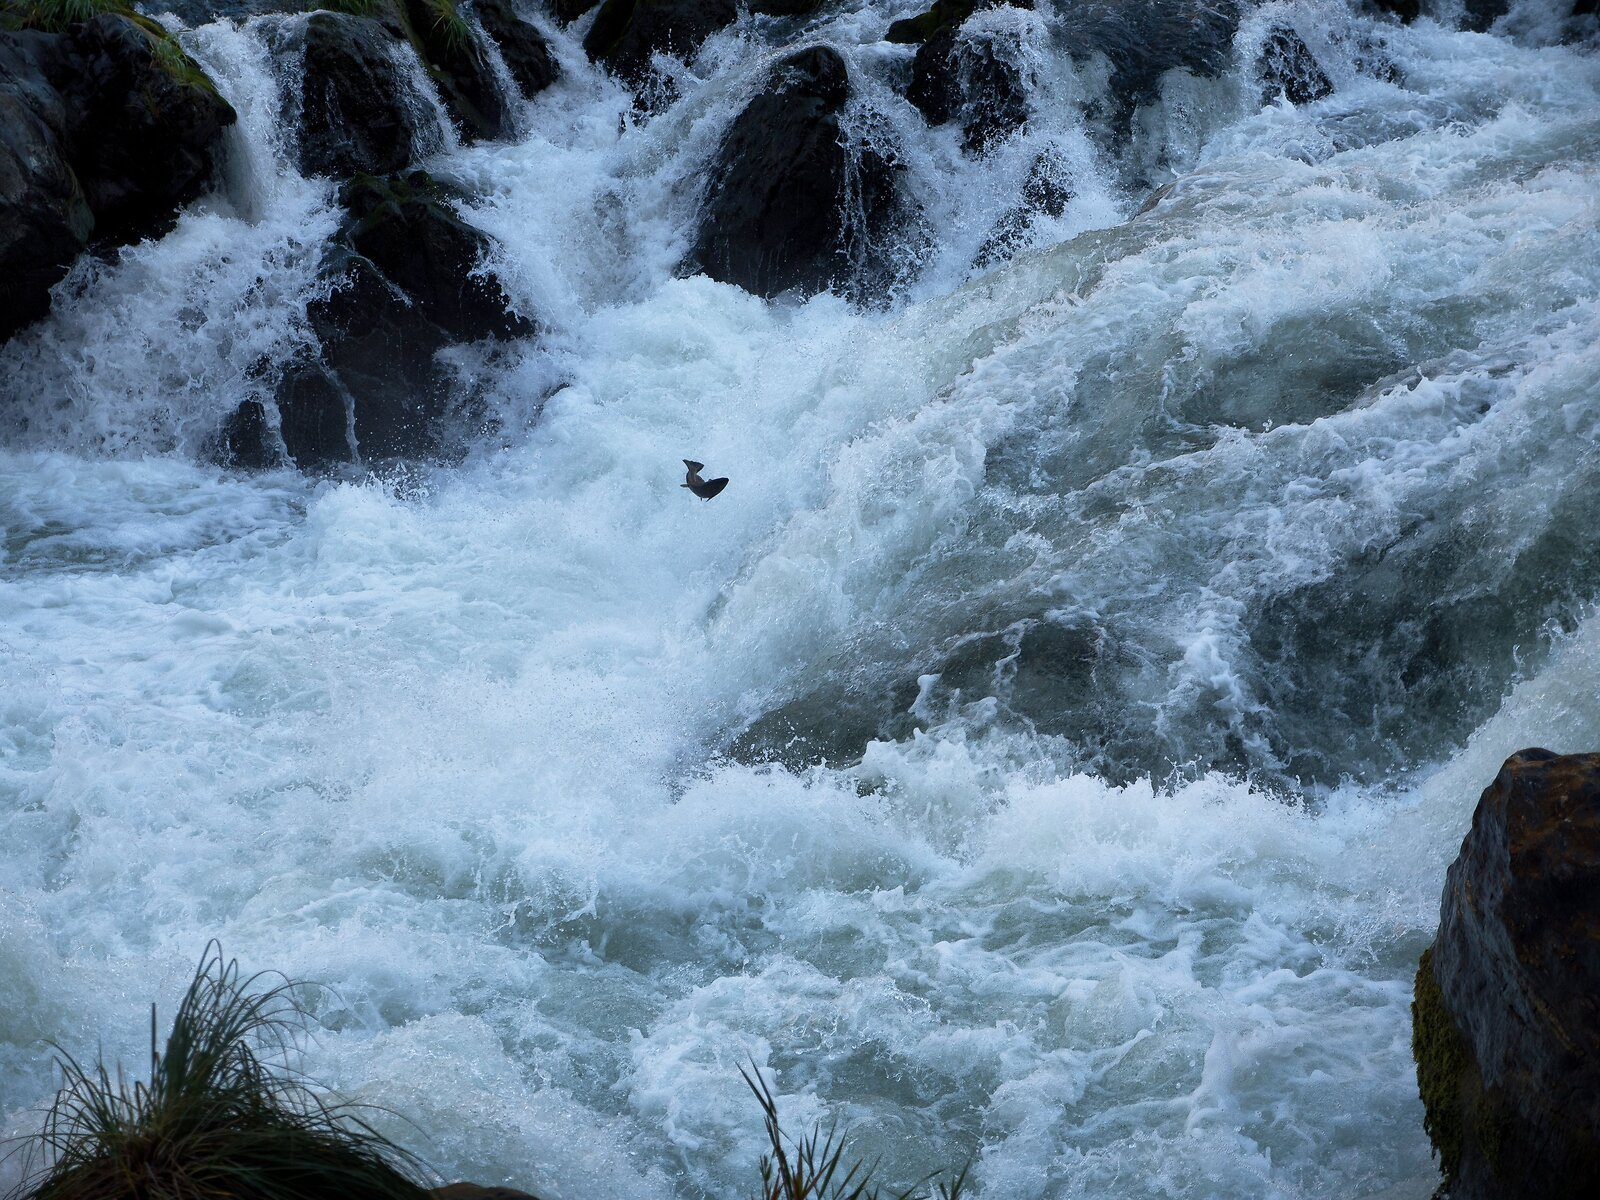 GX8_Oct19_Rogue_River#11(Salmon_in_rapids).jpg